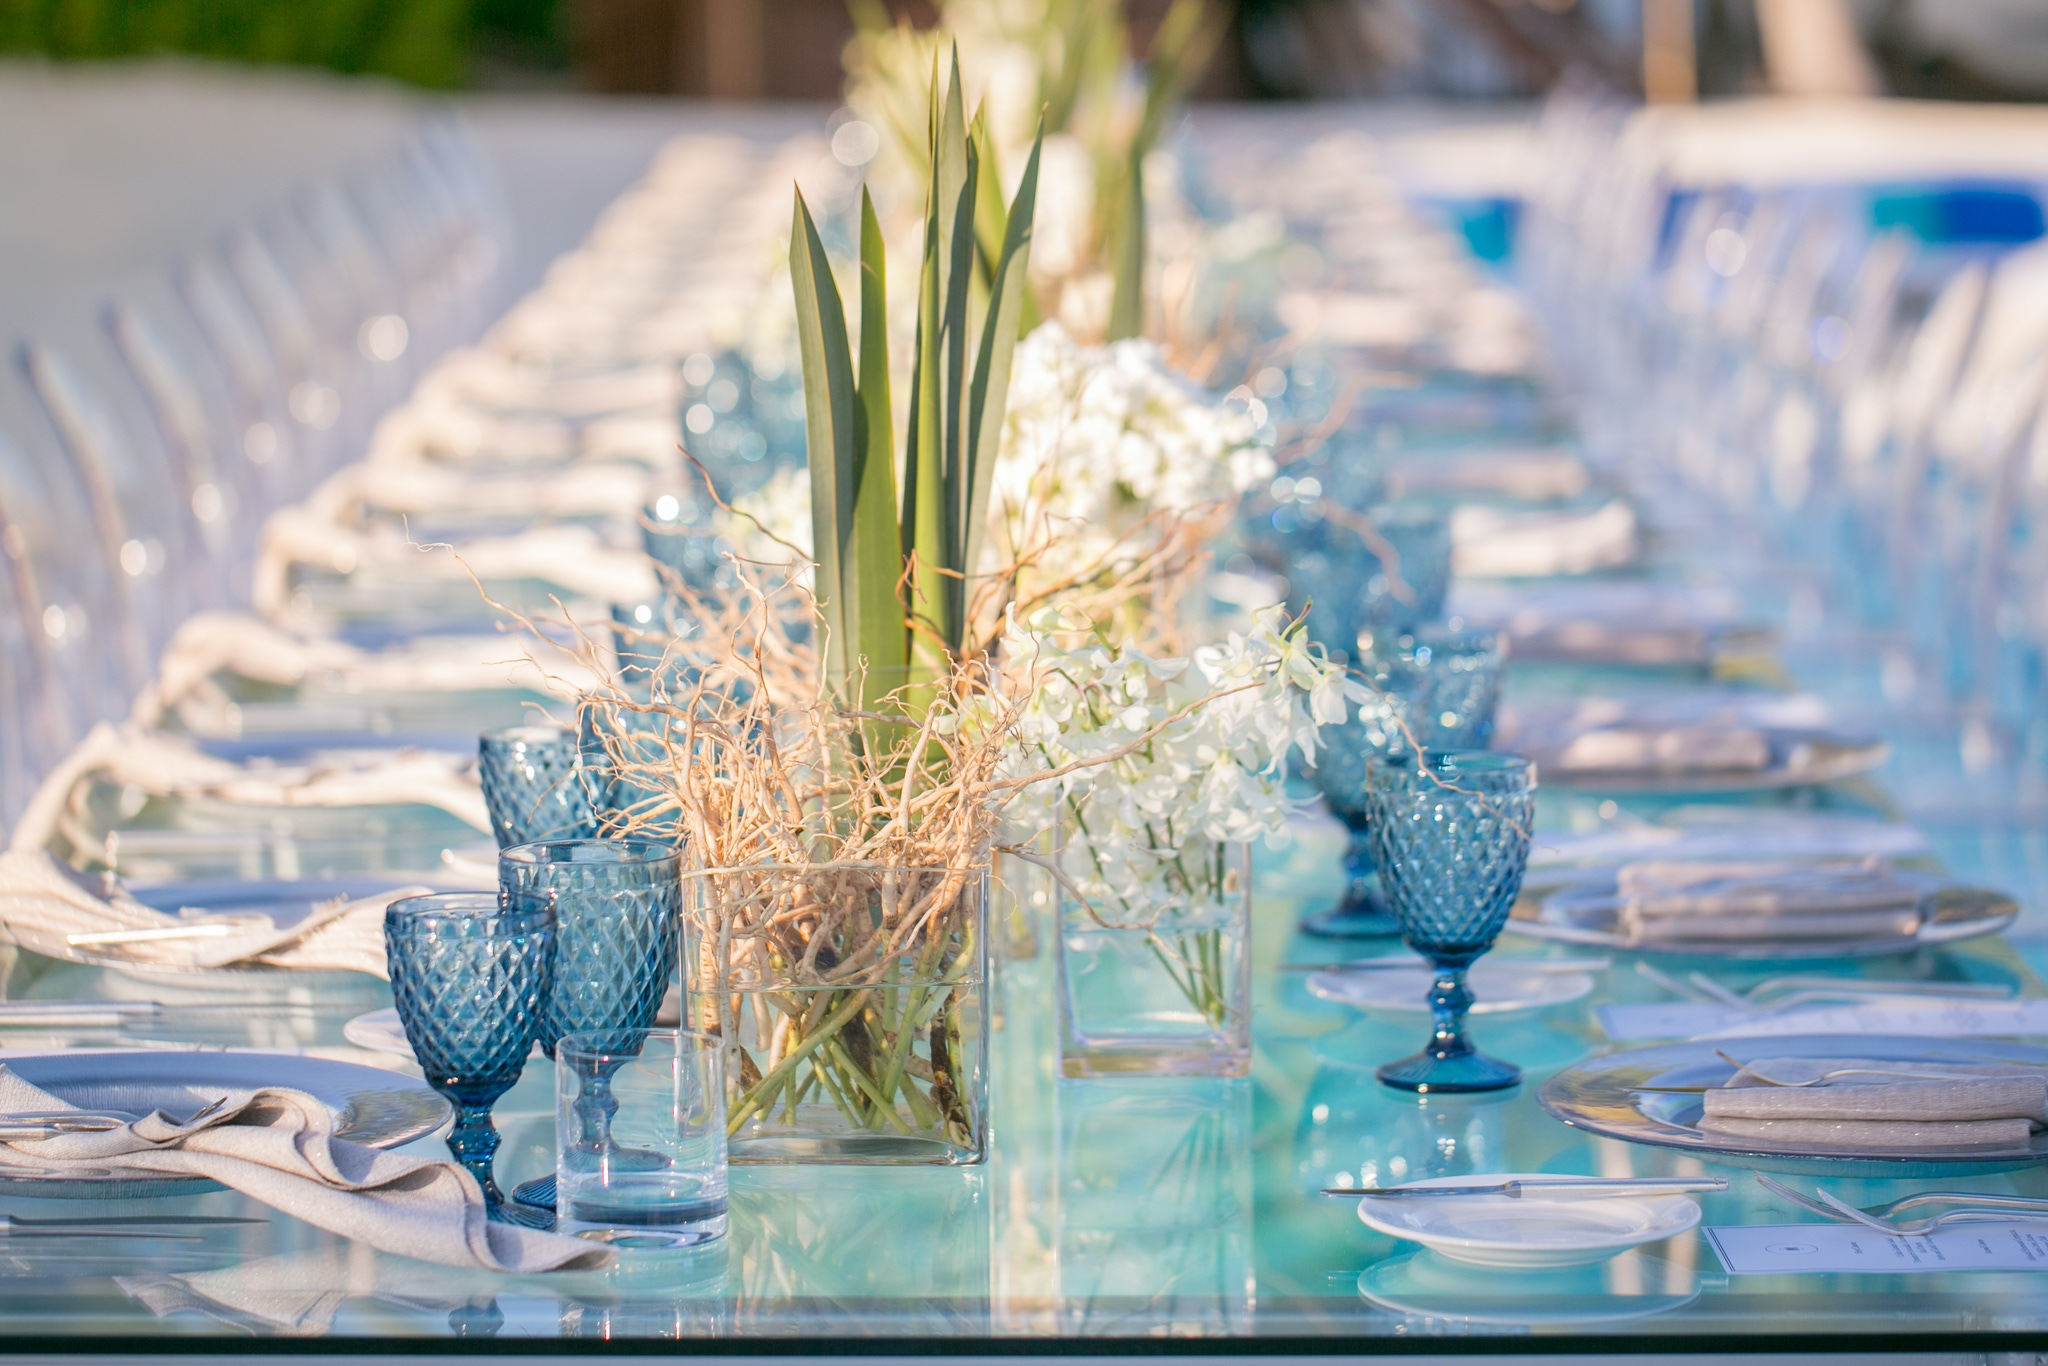 Elegant Occasions by JoAnn-Gregoli - NYC Event Planner